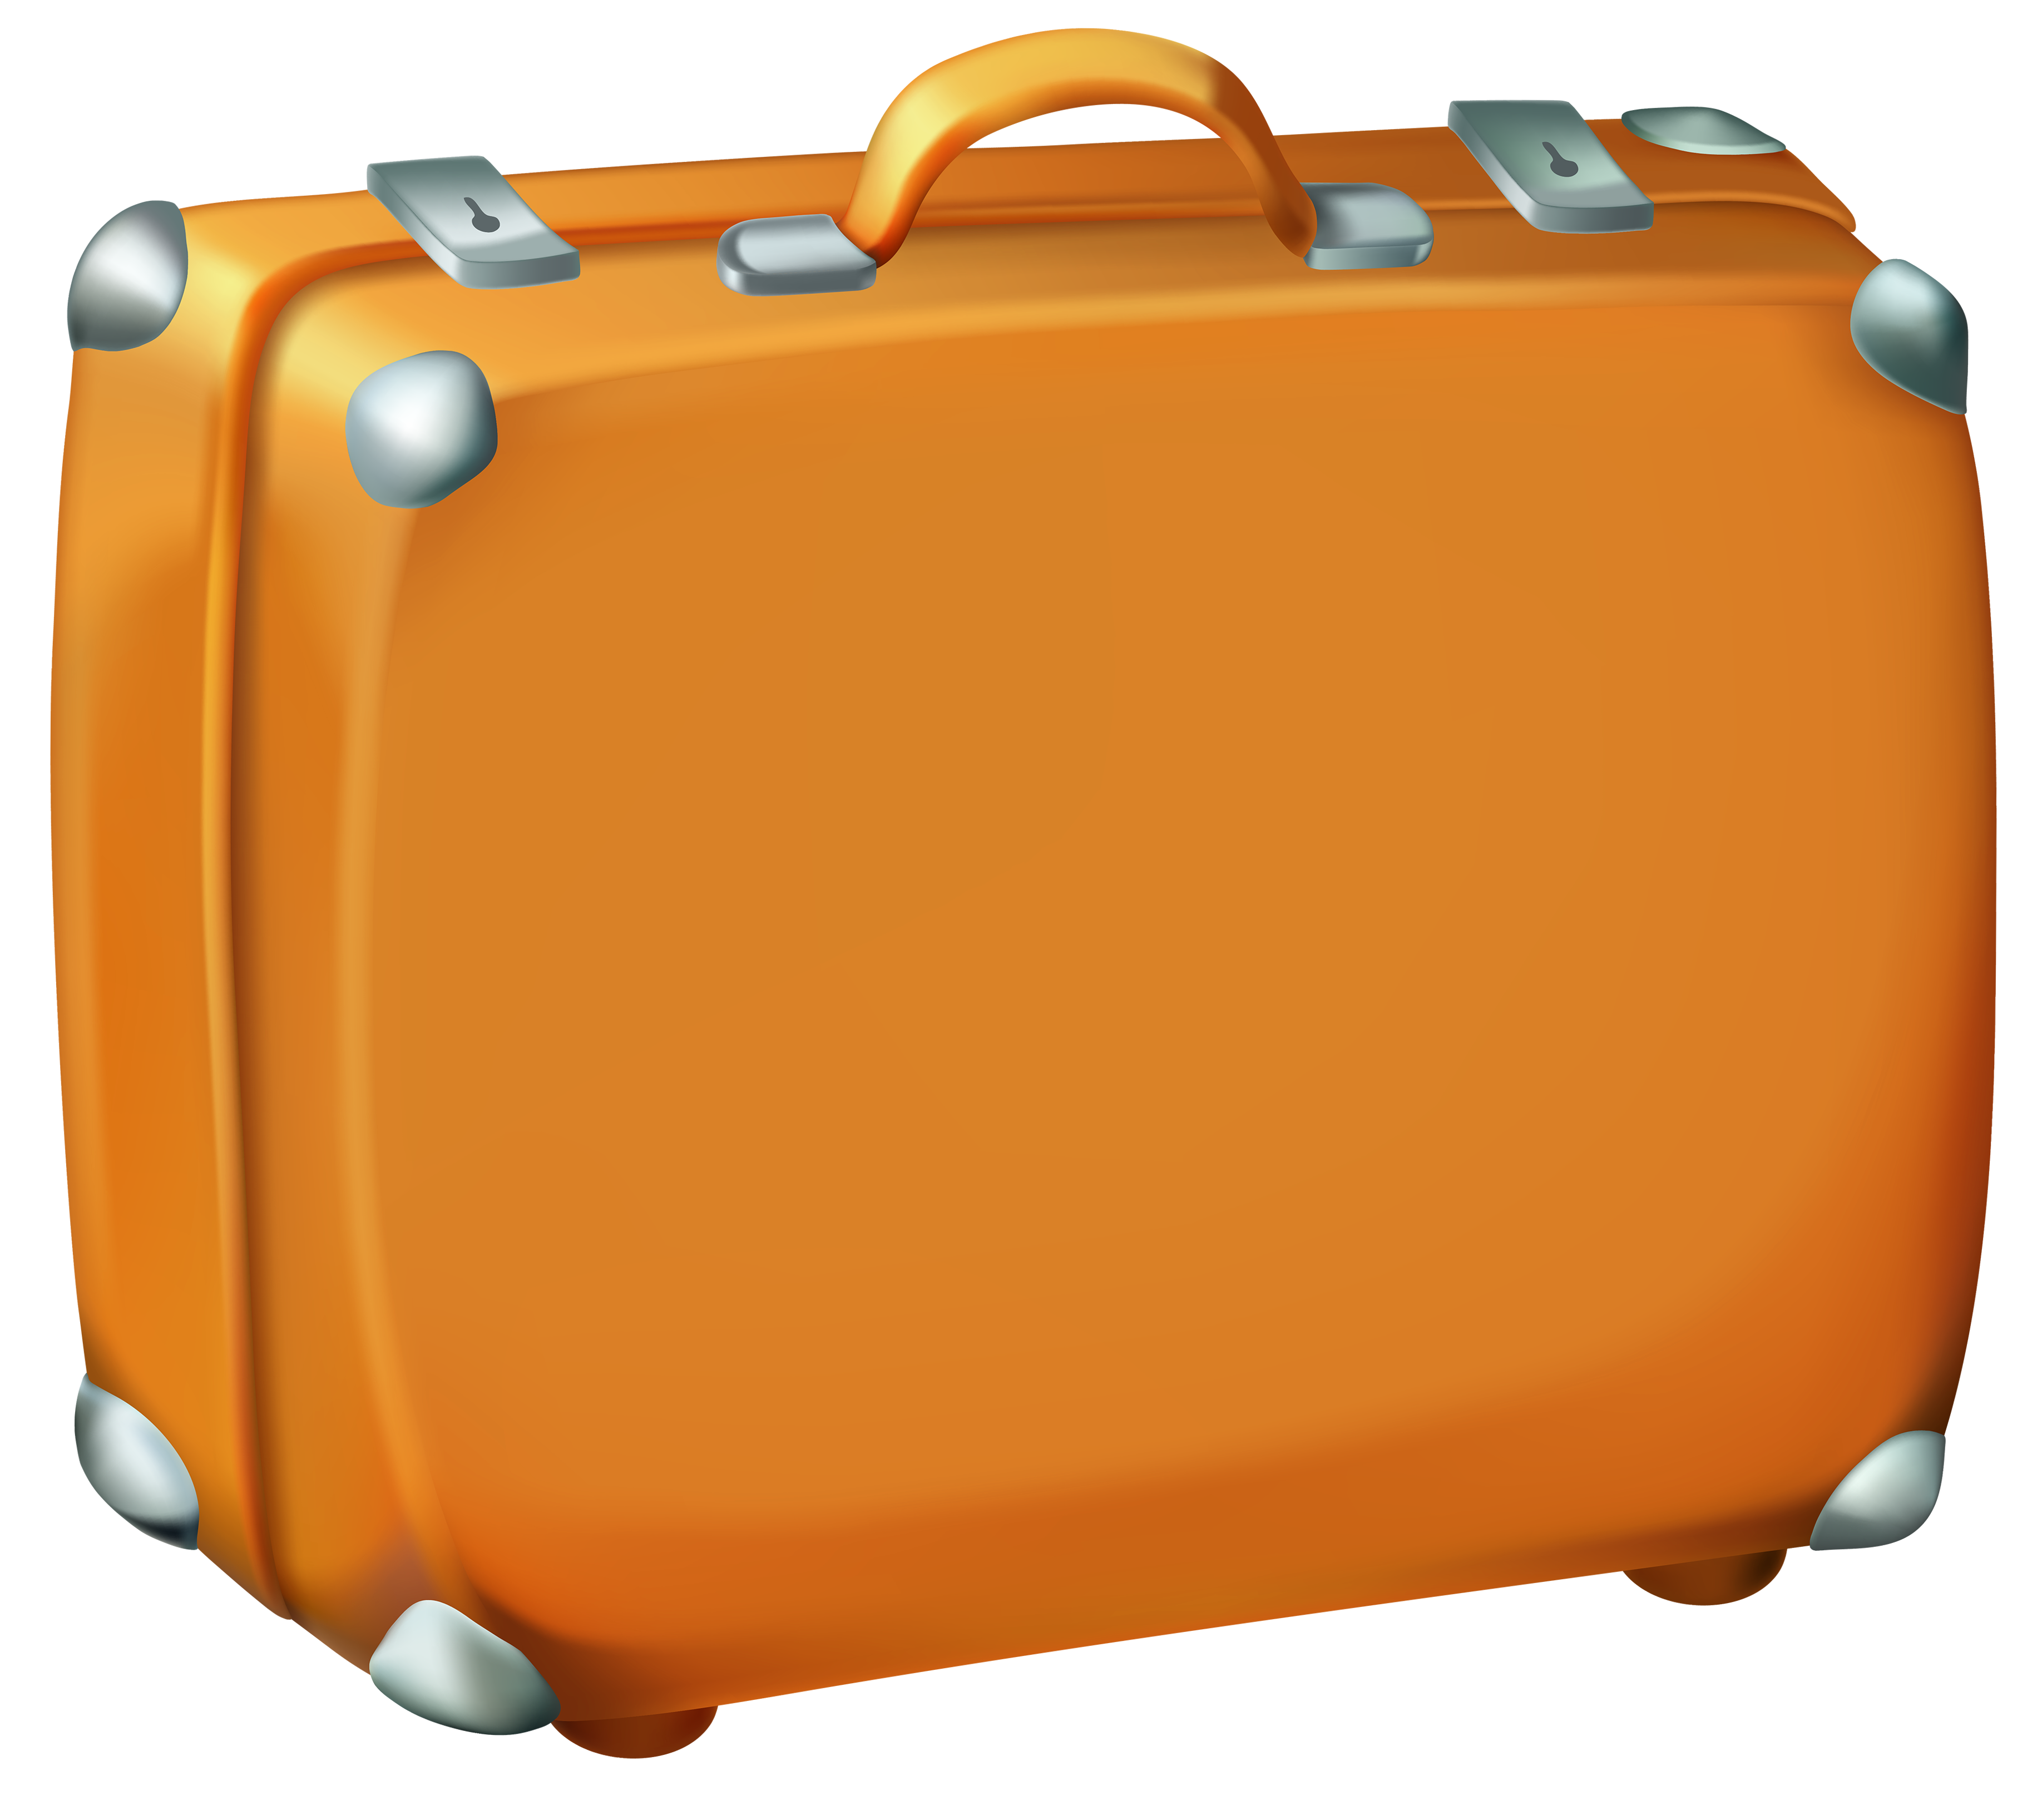 Suitcase clipart Luggage Cliparting Suitcase Clip clipart